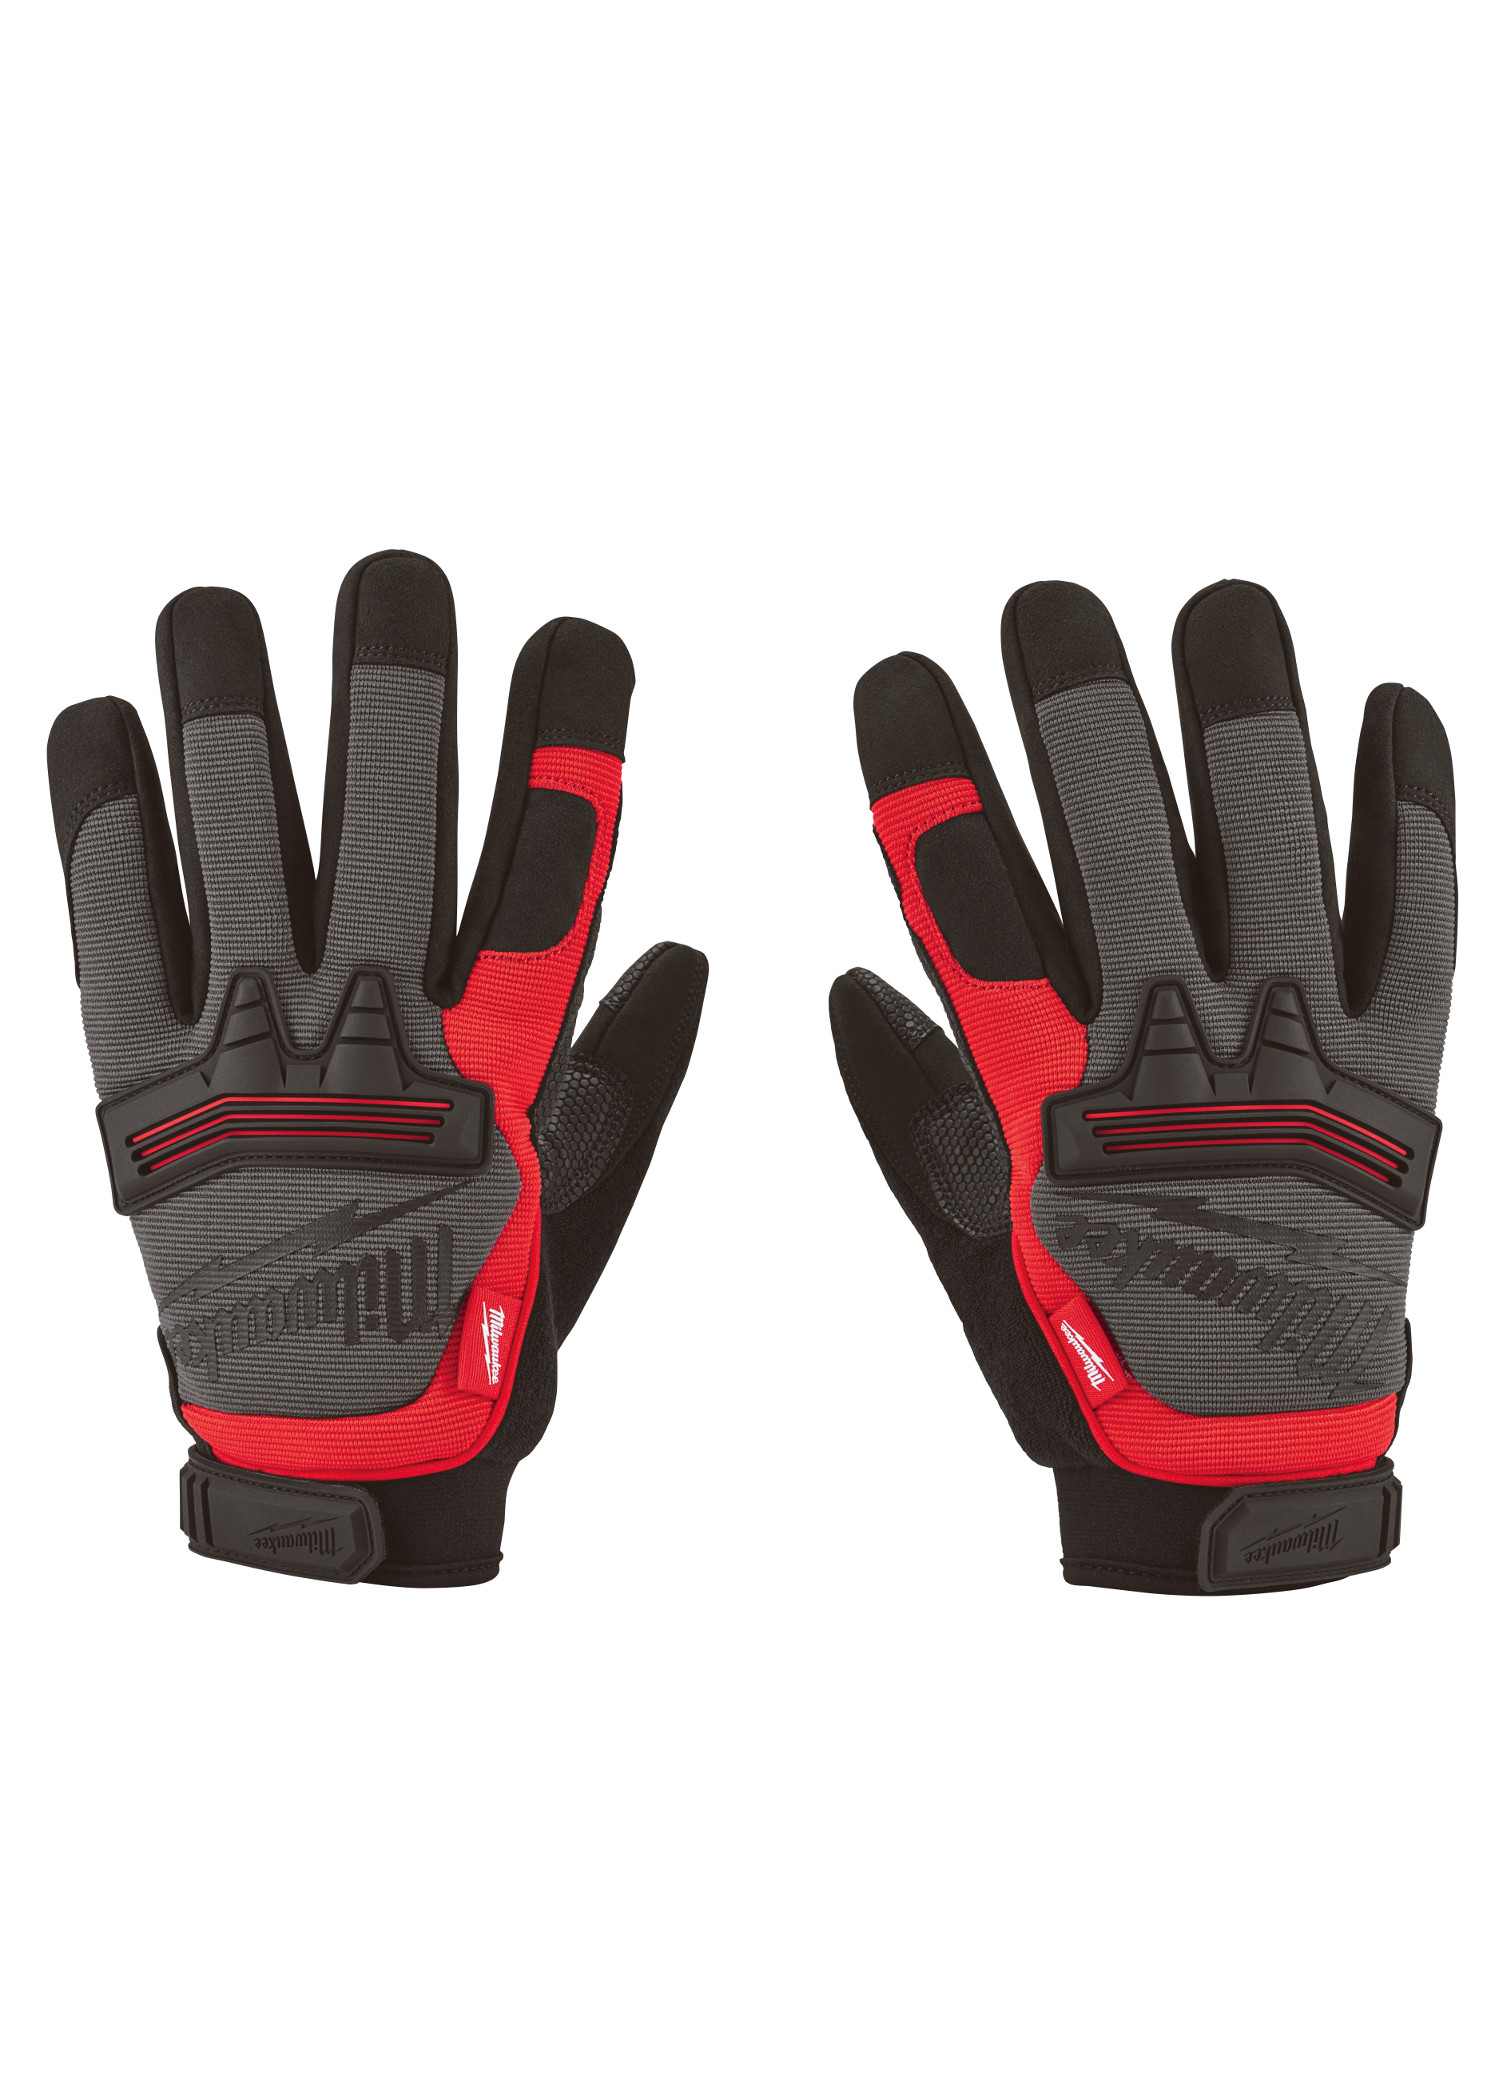 Milwaukee® 48-22-8735 Demolition Fingerless General Purpose Work Gloves, S, Black/Red, Synthetic Leather